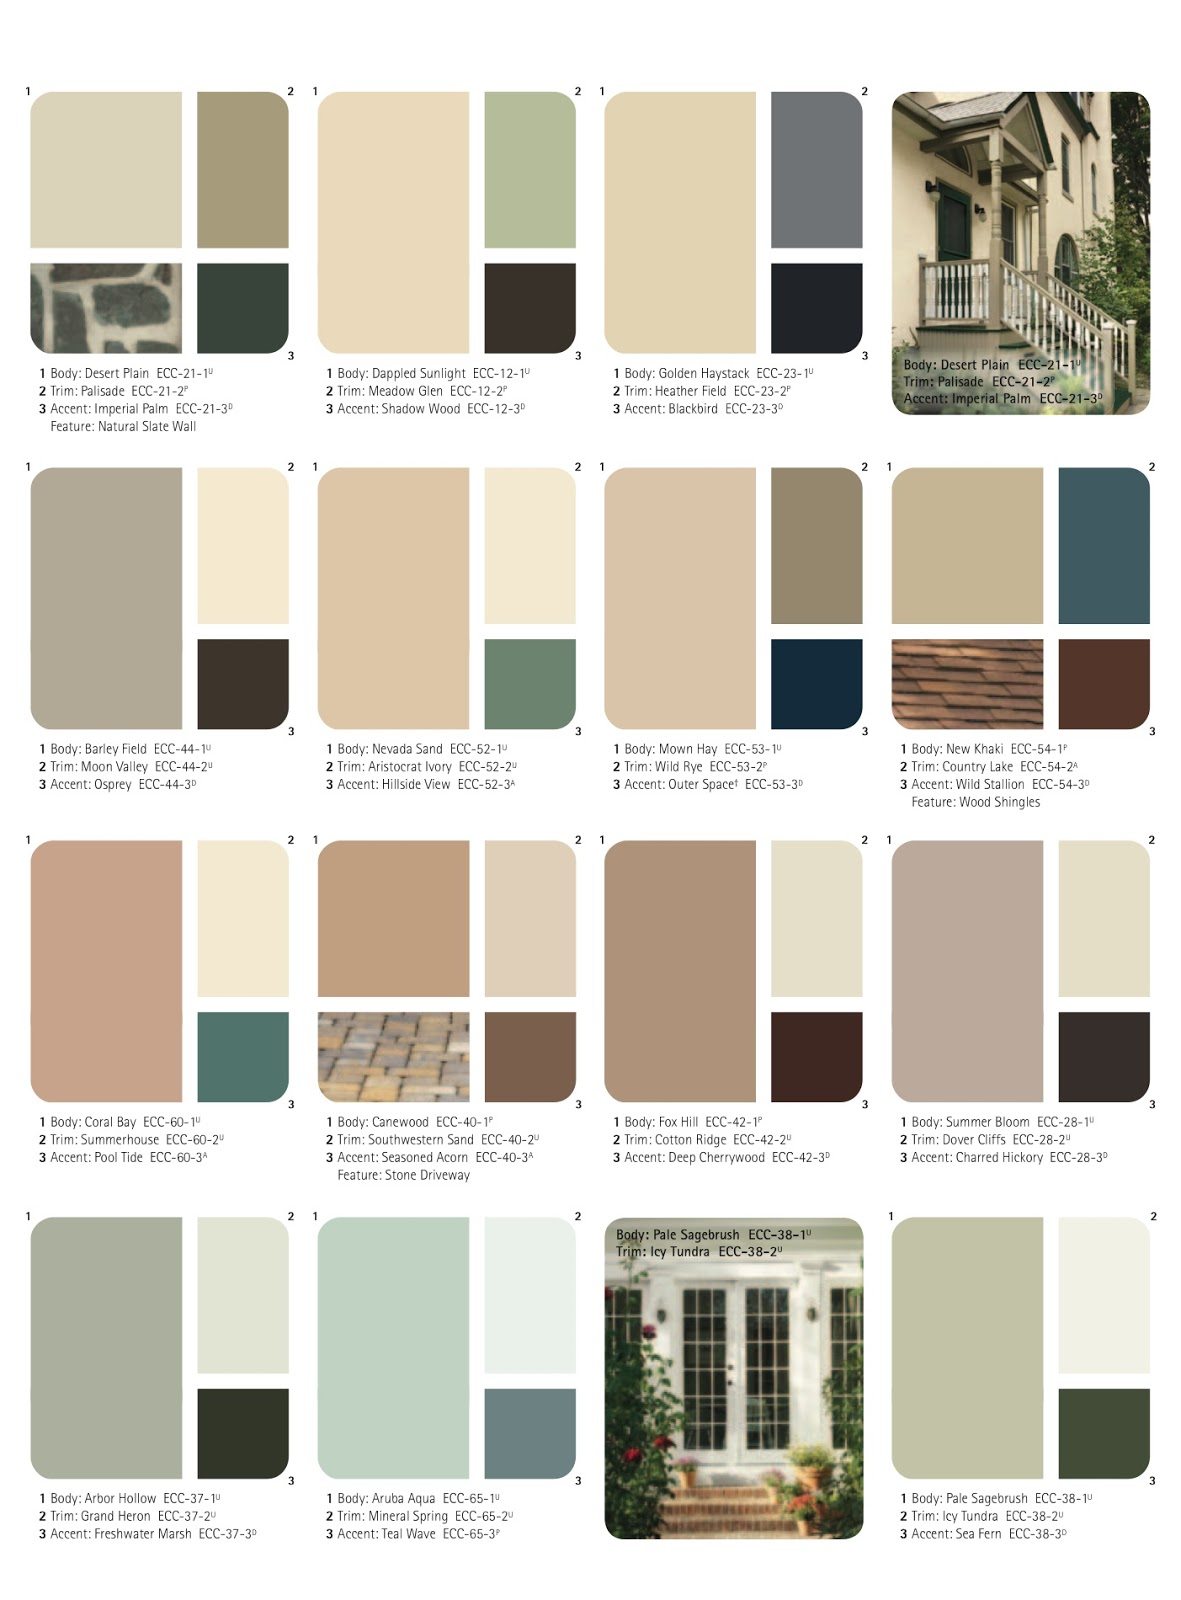 Exterior paint color schemes for brick homes home painting ideas - Paint colors for homes exterior style ...